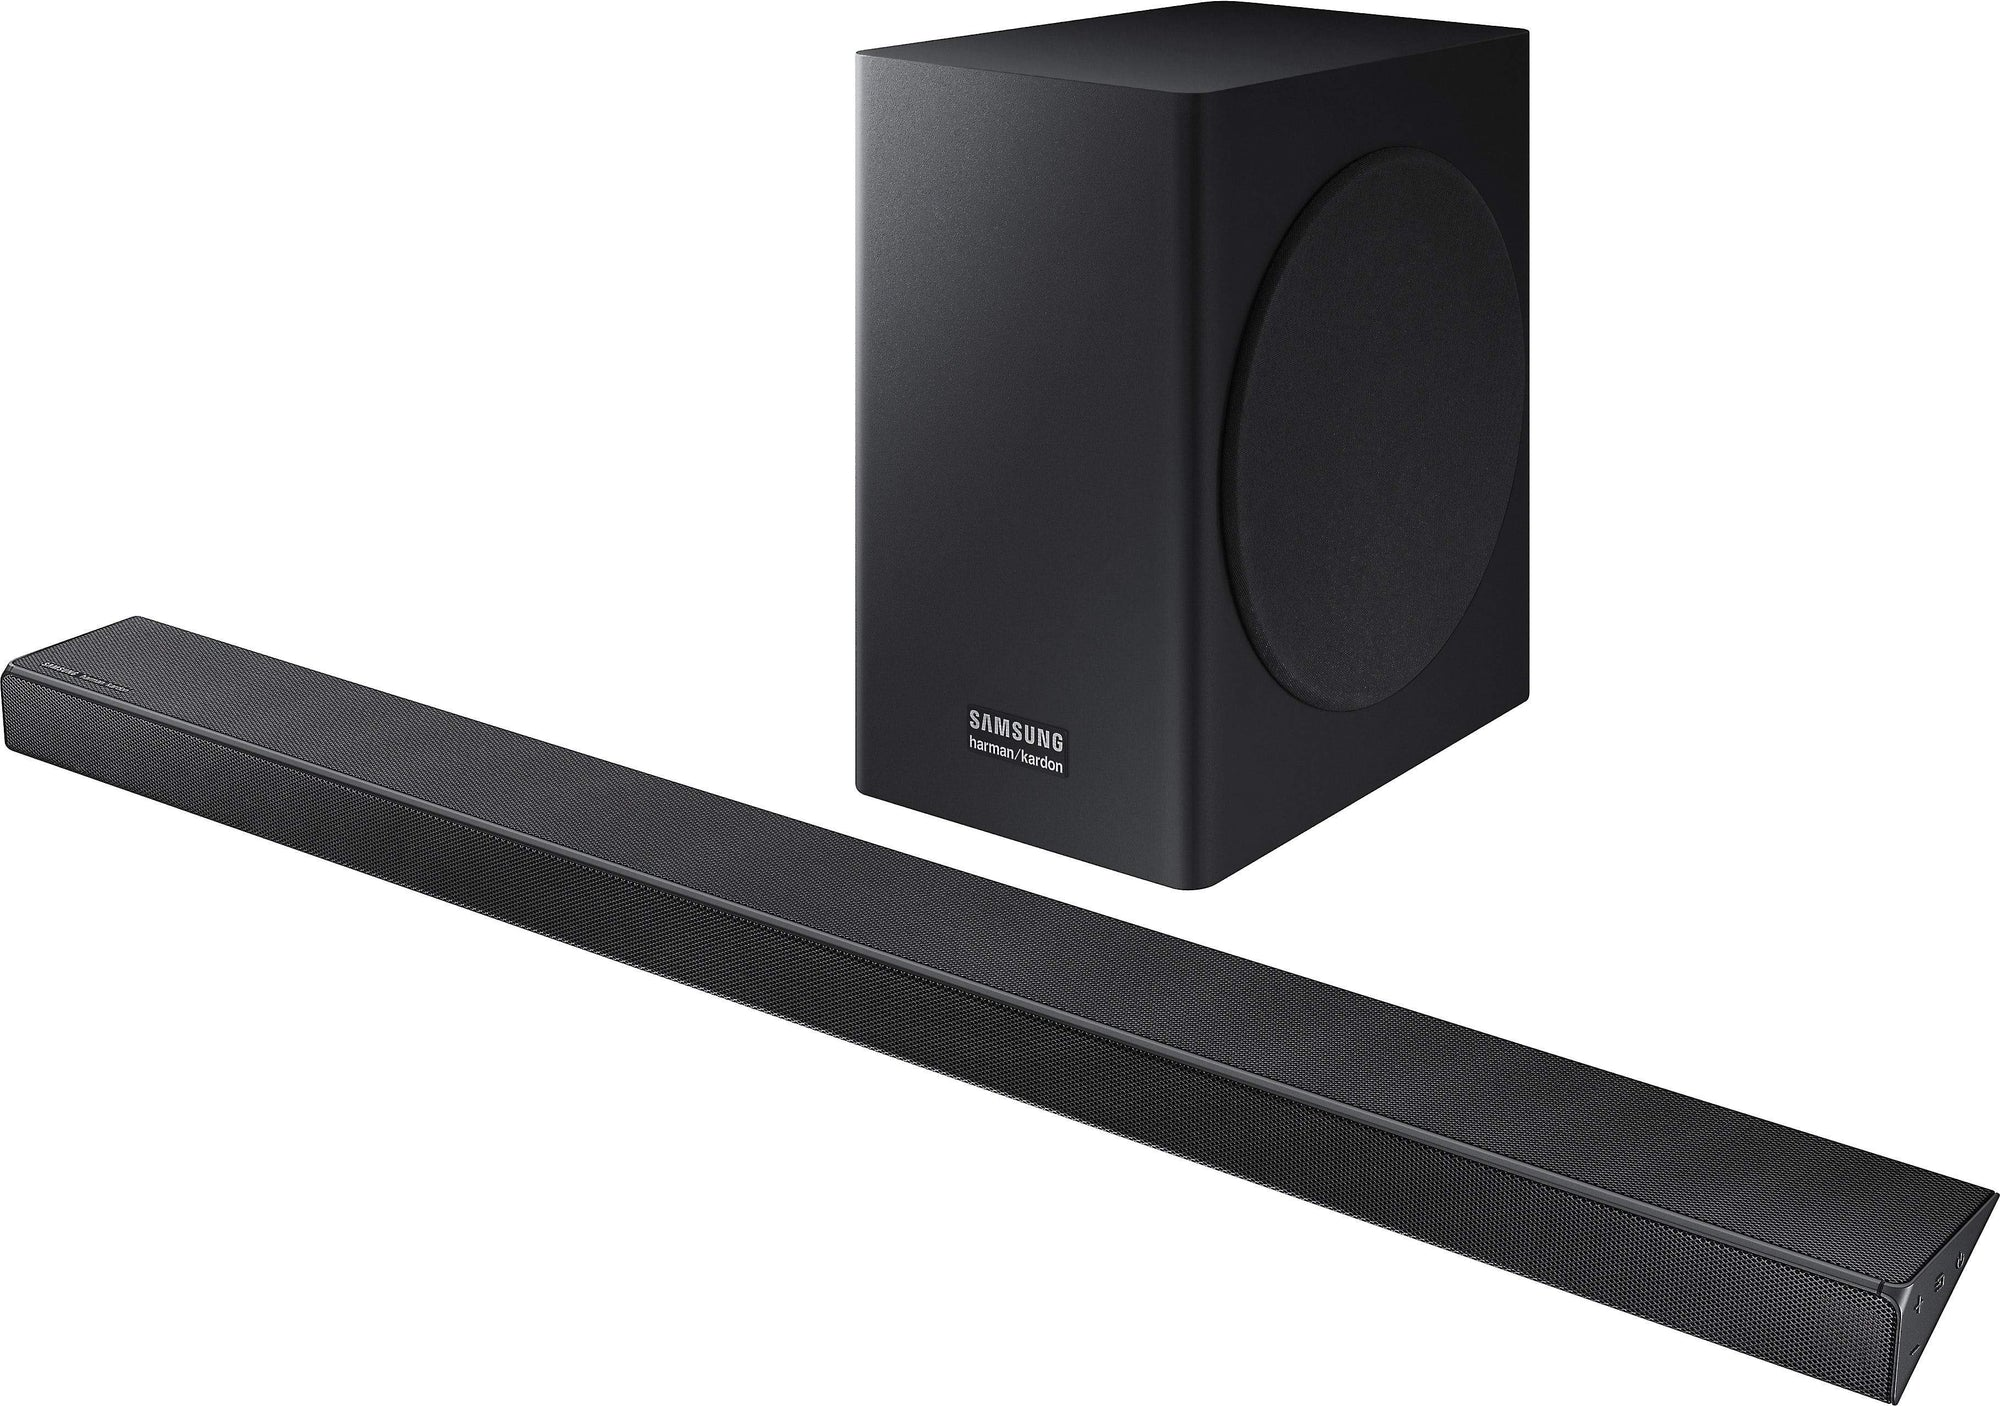 Samsung HW-Q60R/ZA Harman Kardon Soundbar Audio & Video Samsung